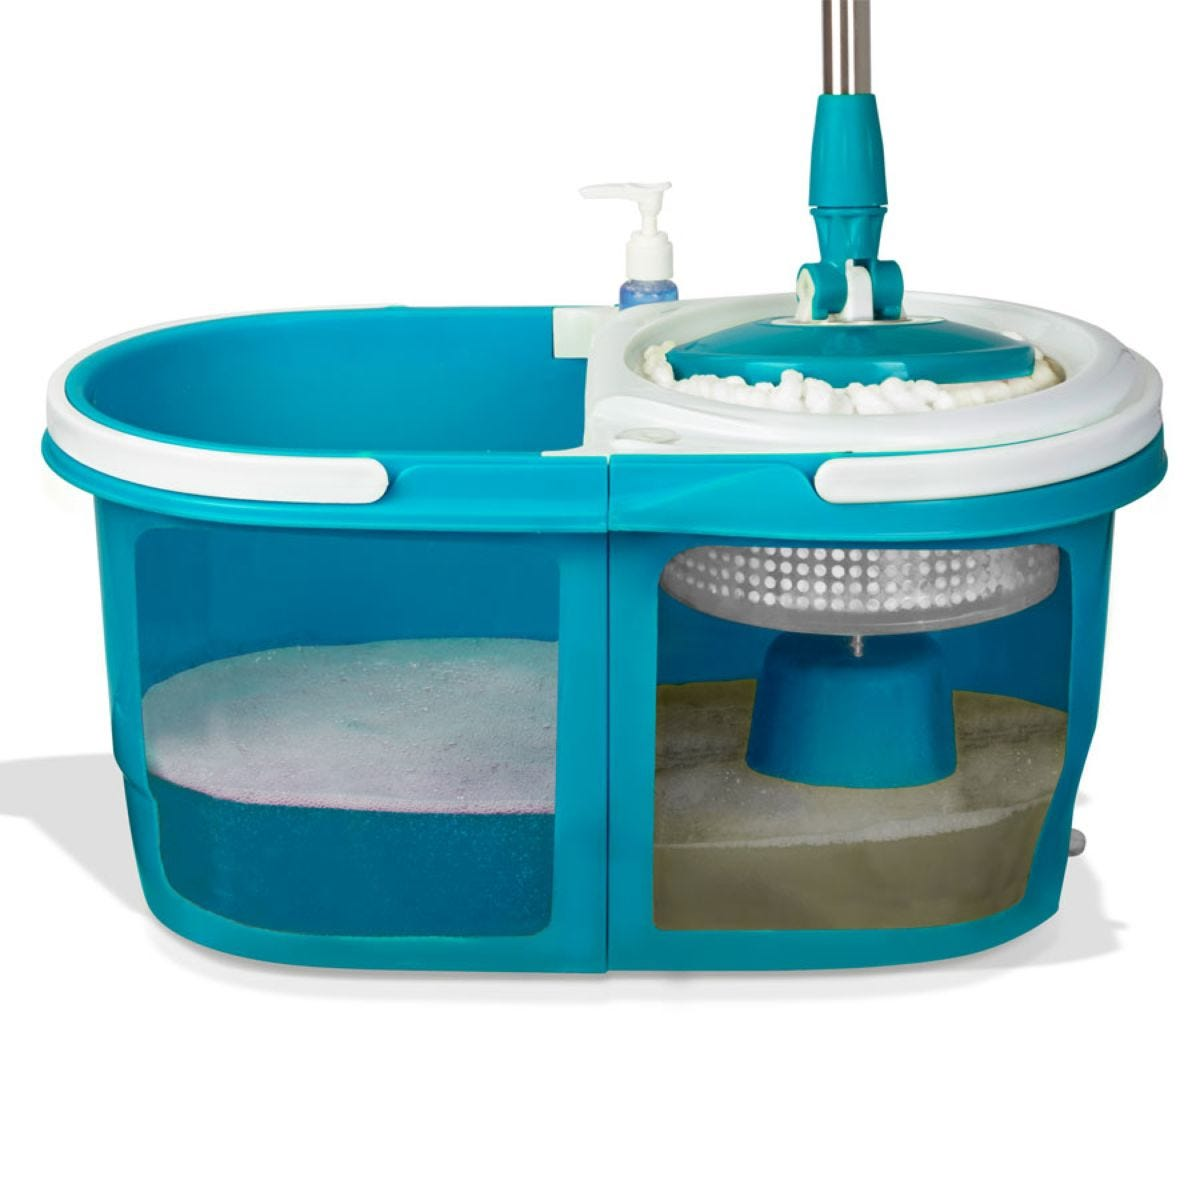 Dual Spin Mop with Bucket Set - Turquoise Blue